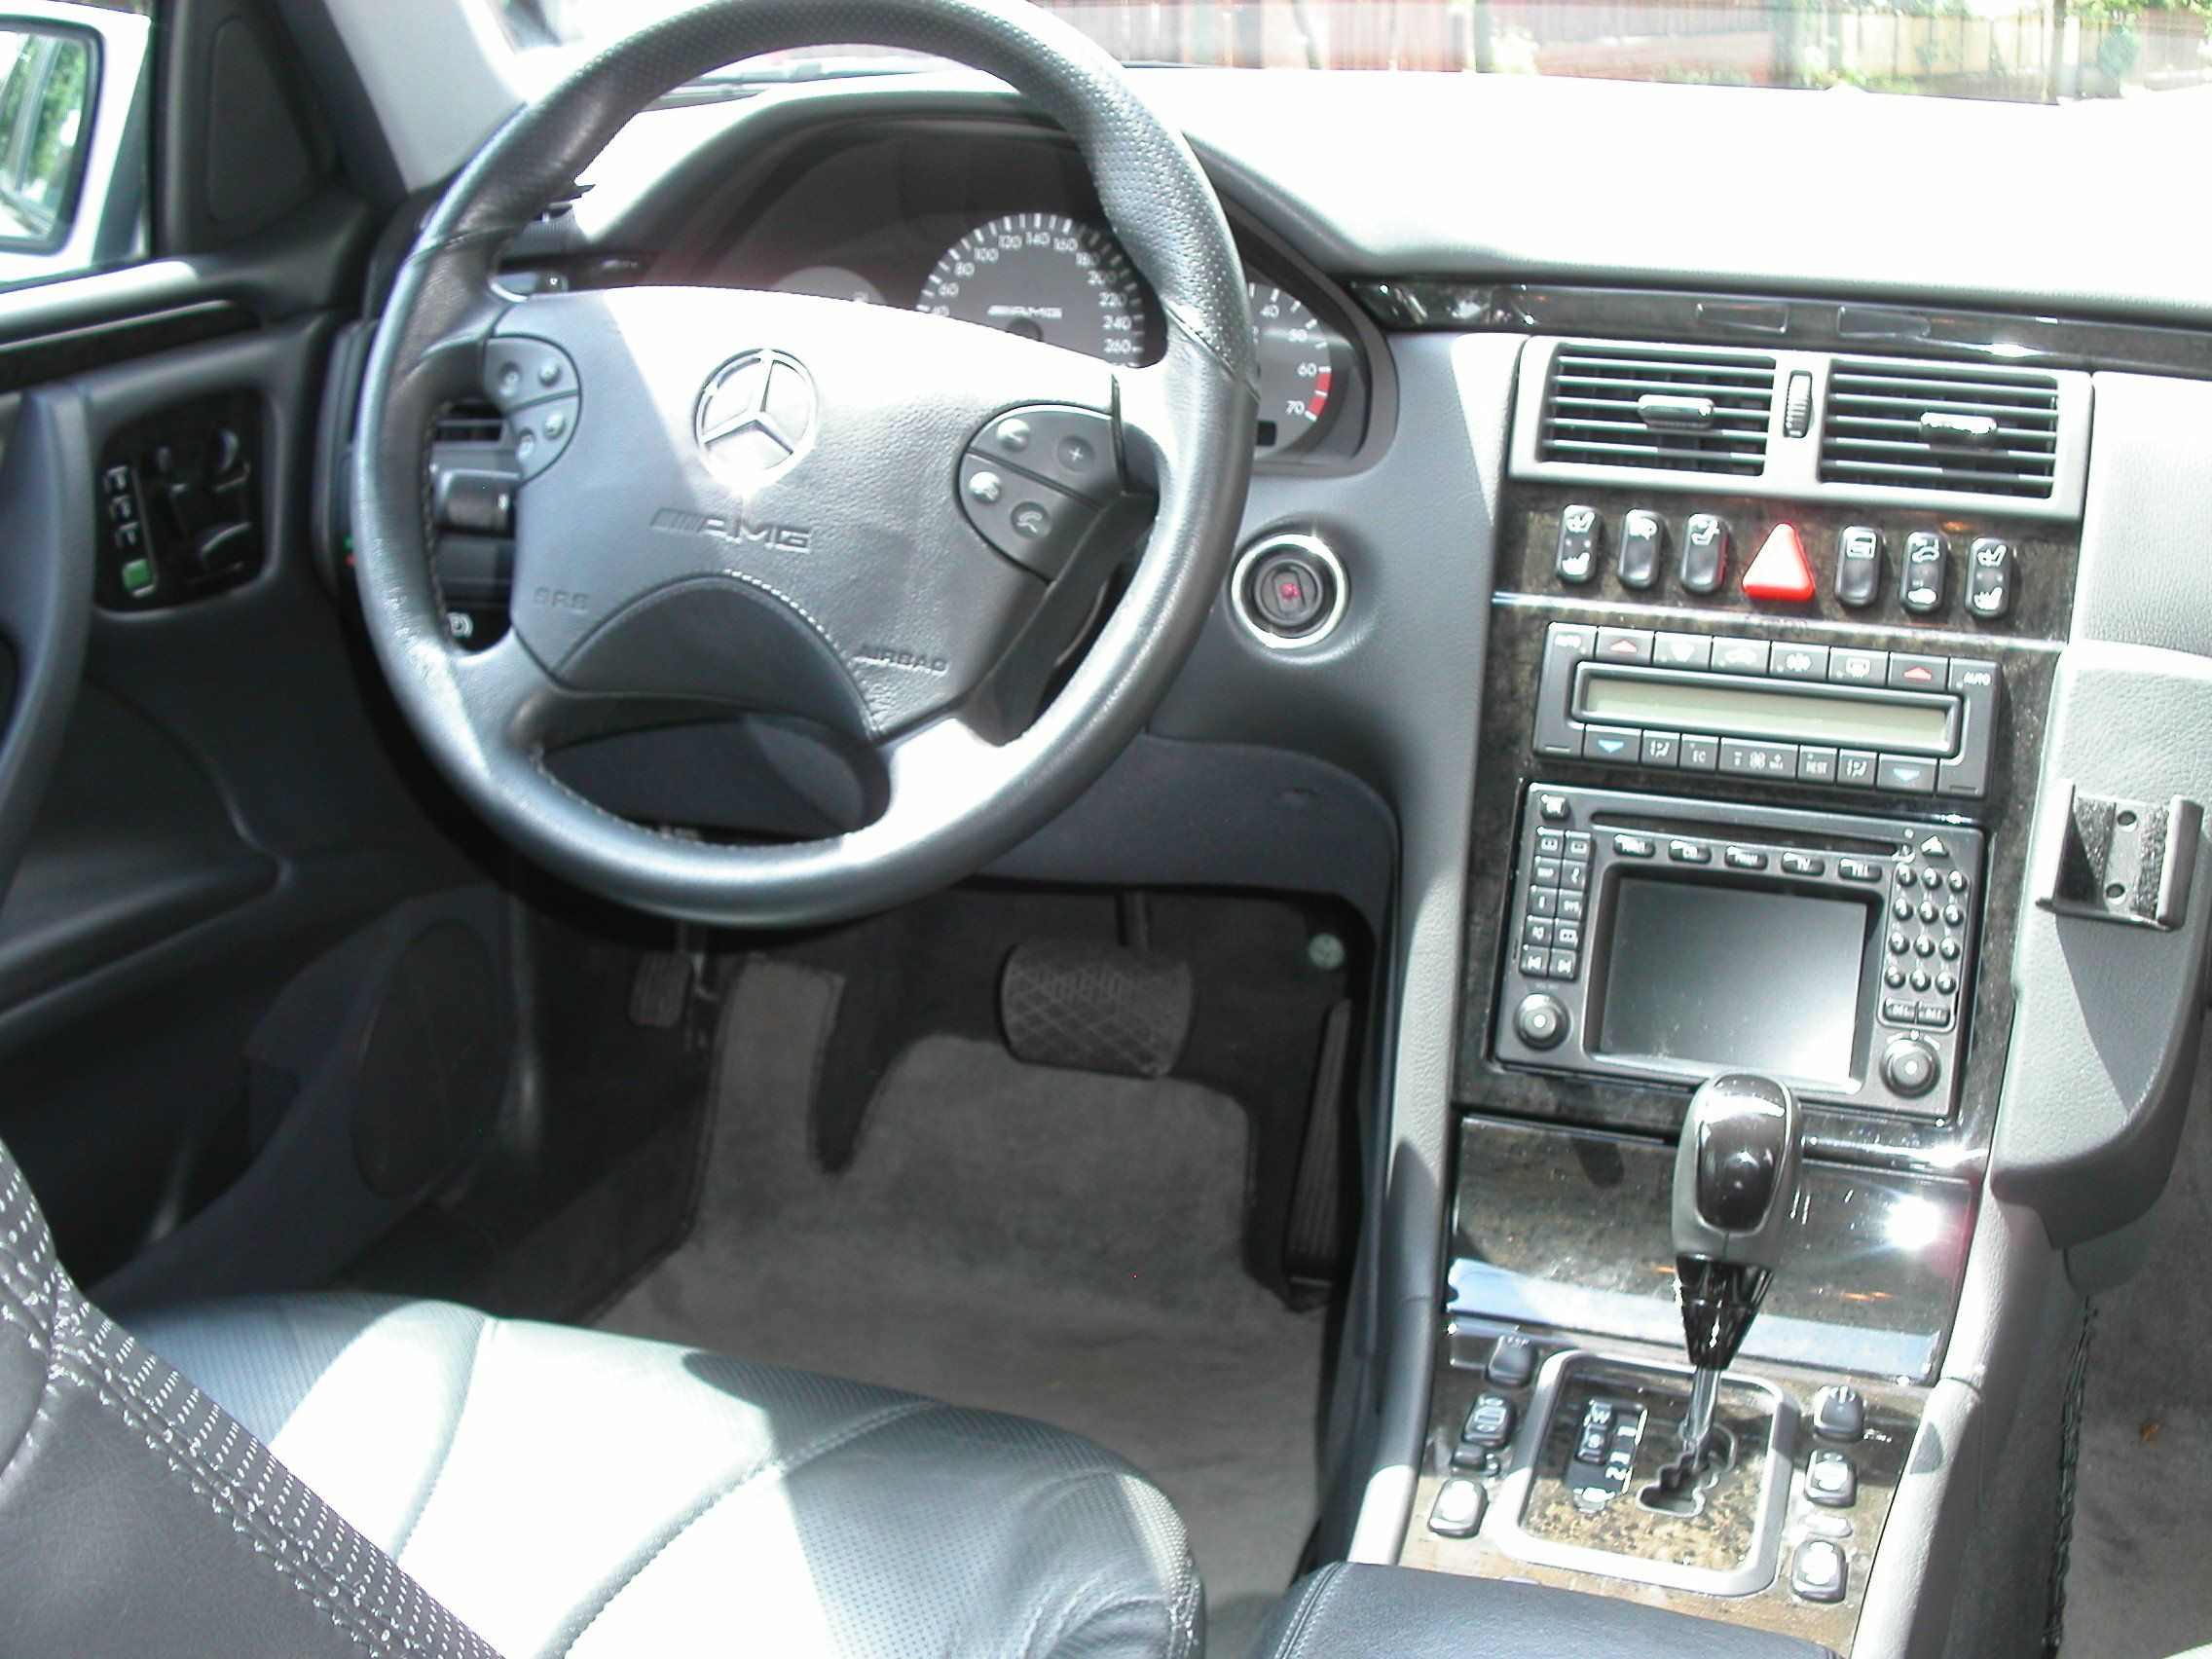 e55amg017 Interesting Info About 2001 E55 Amg with Terrific Images Cars Review